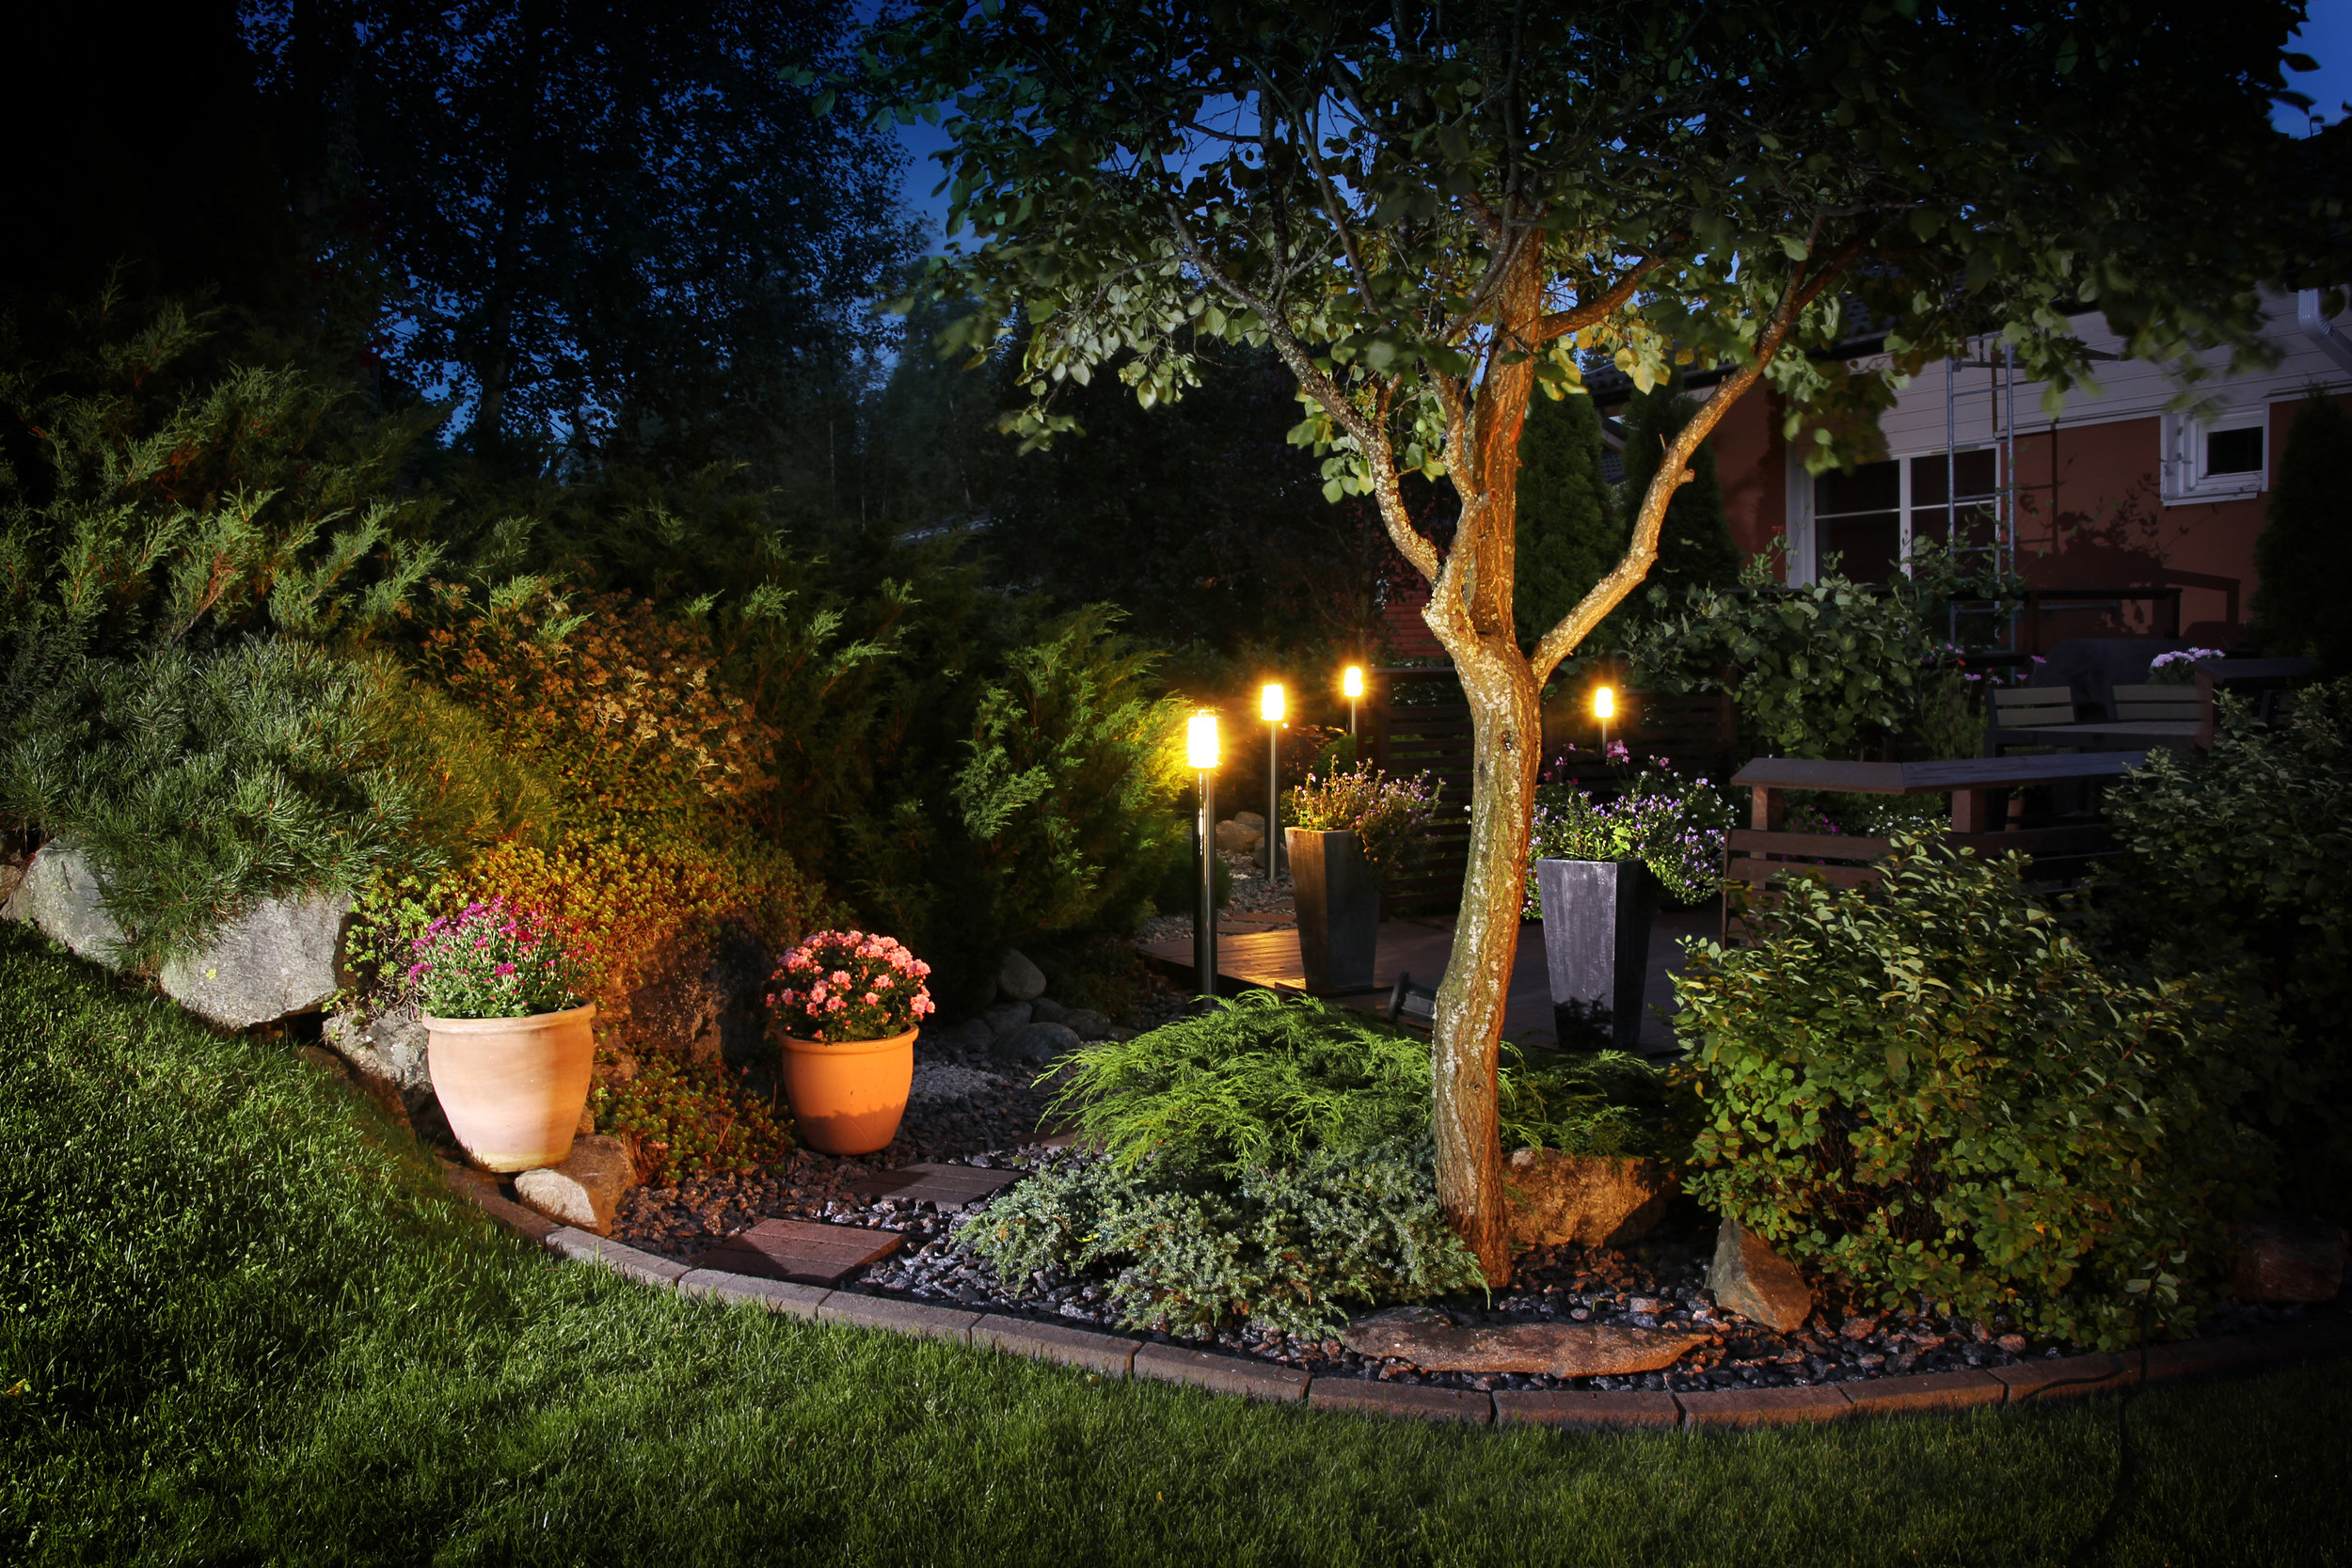 LED lighting illuminates a backyard garden